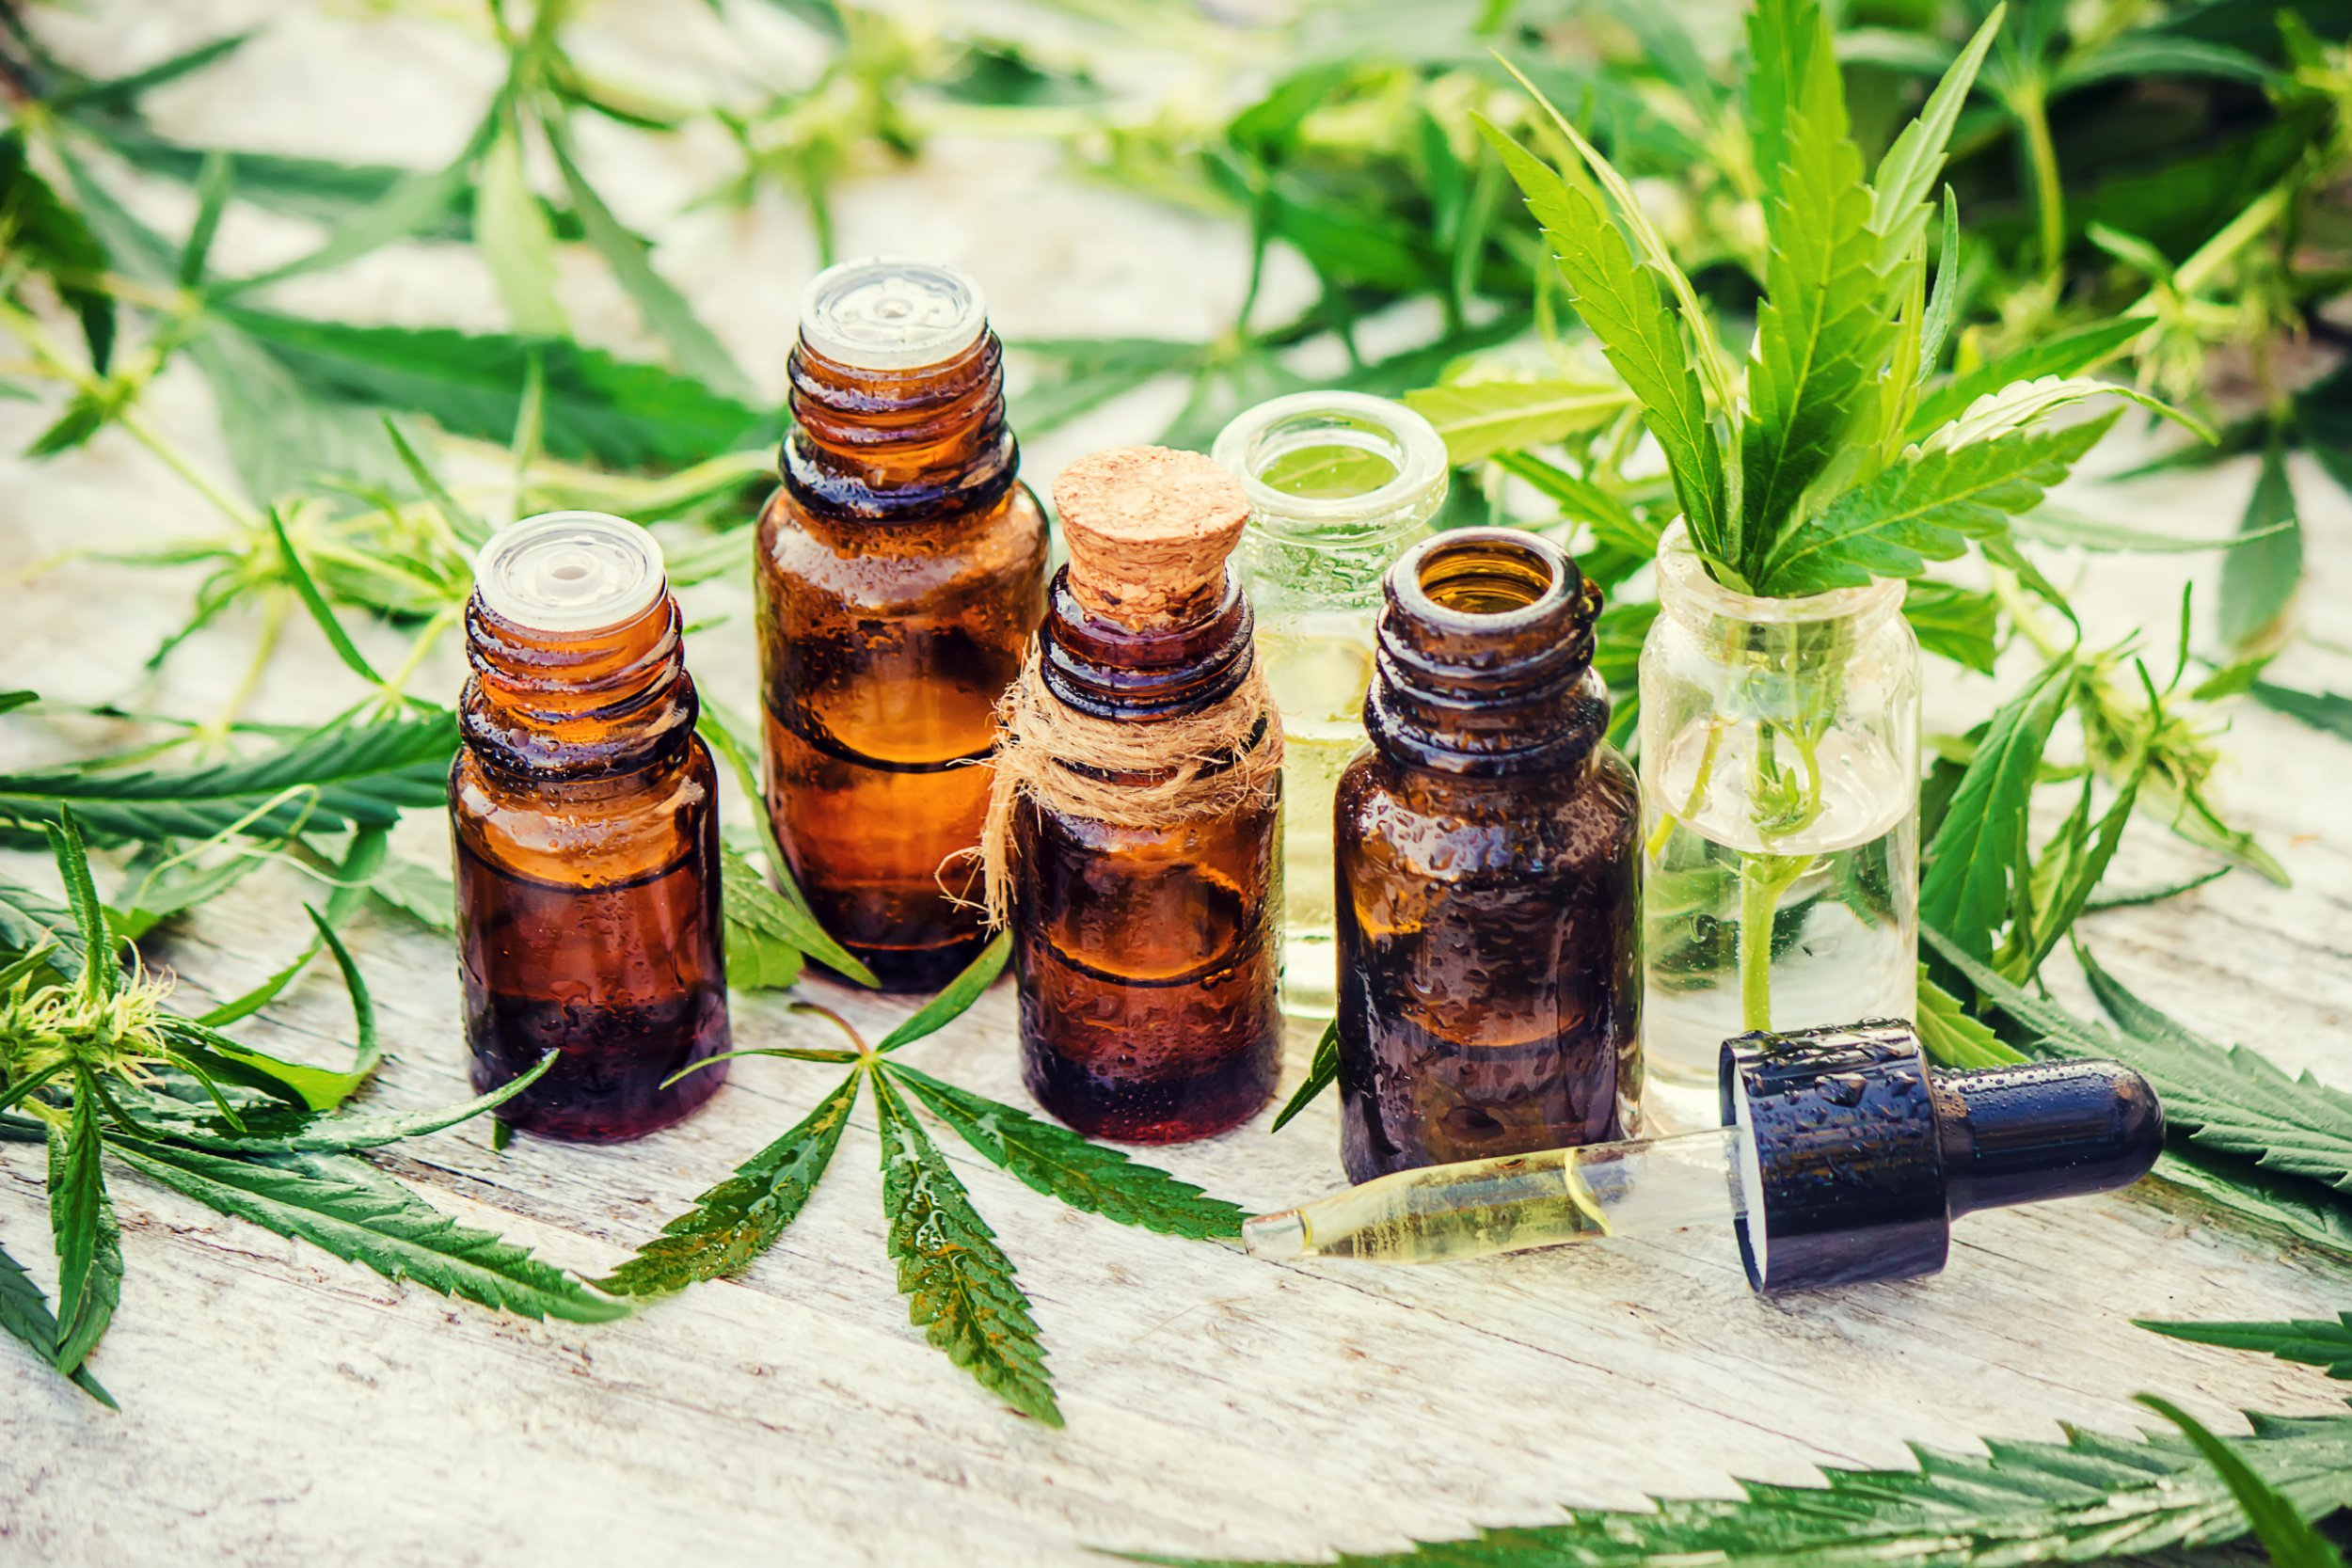 Cannabis herb and leaves for treatment (broth, tincture, extract, oil). Selective focus.; Shutterstock ID 693644017; Purchase Order: -